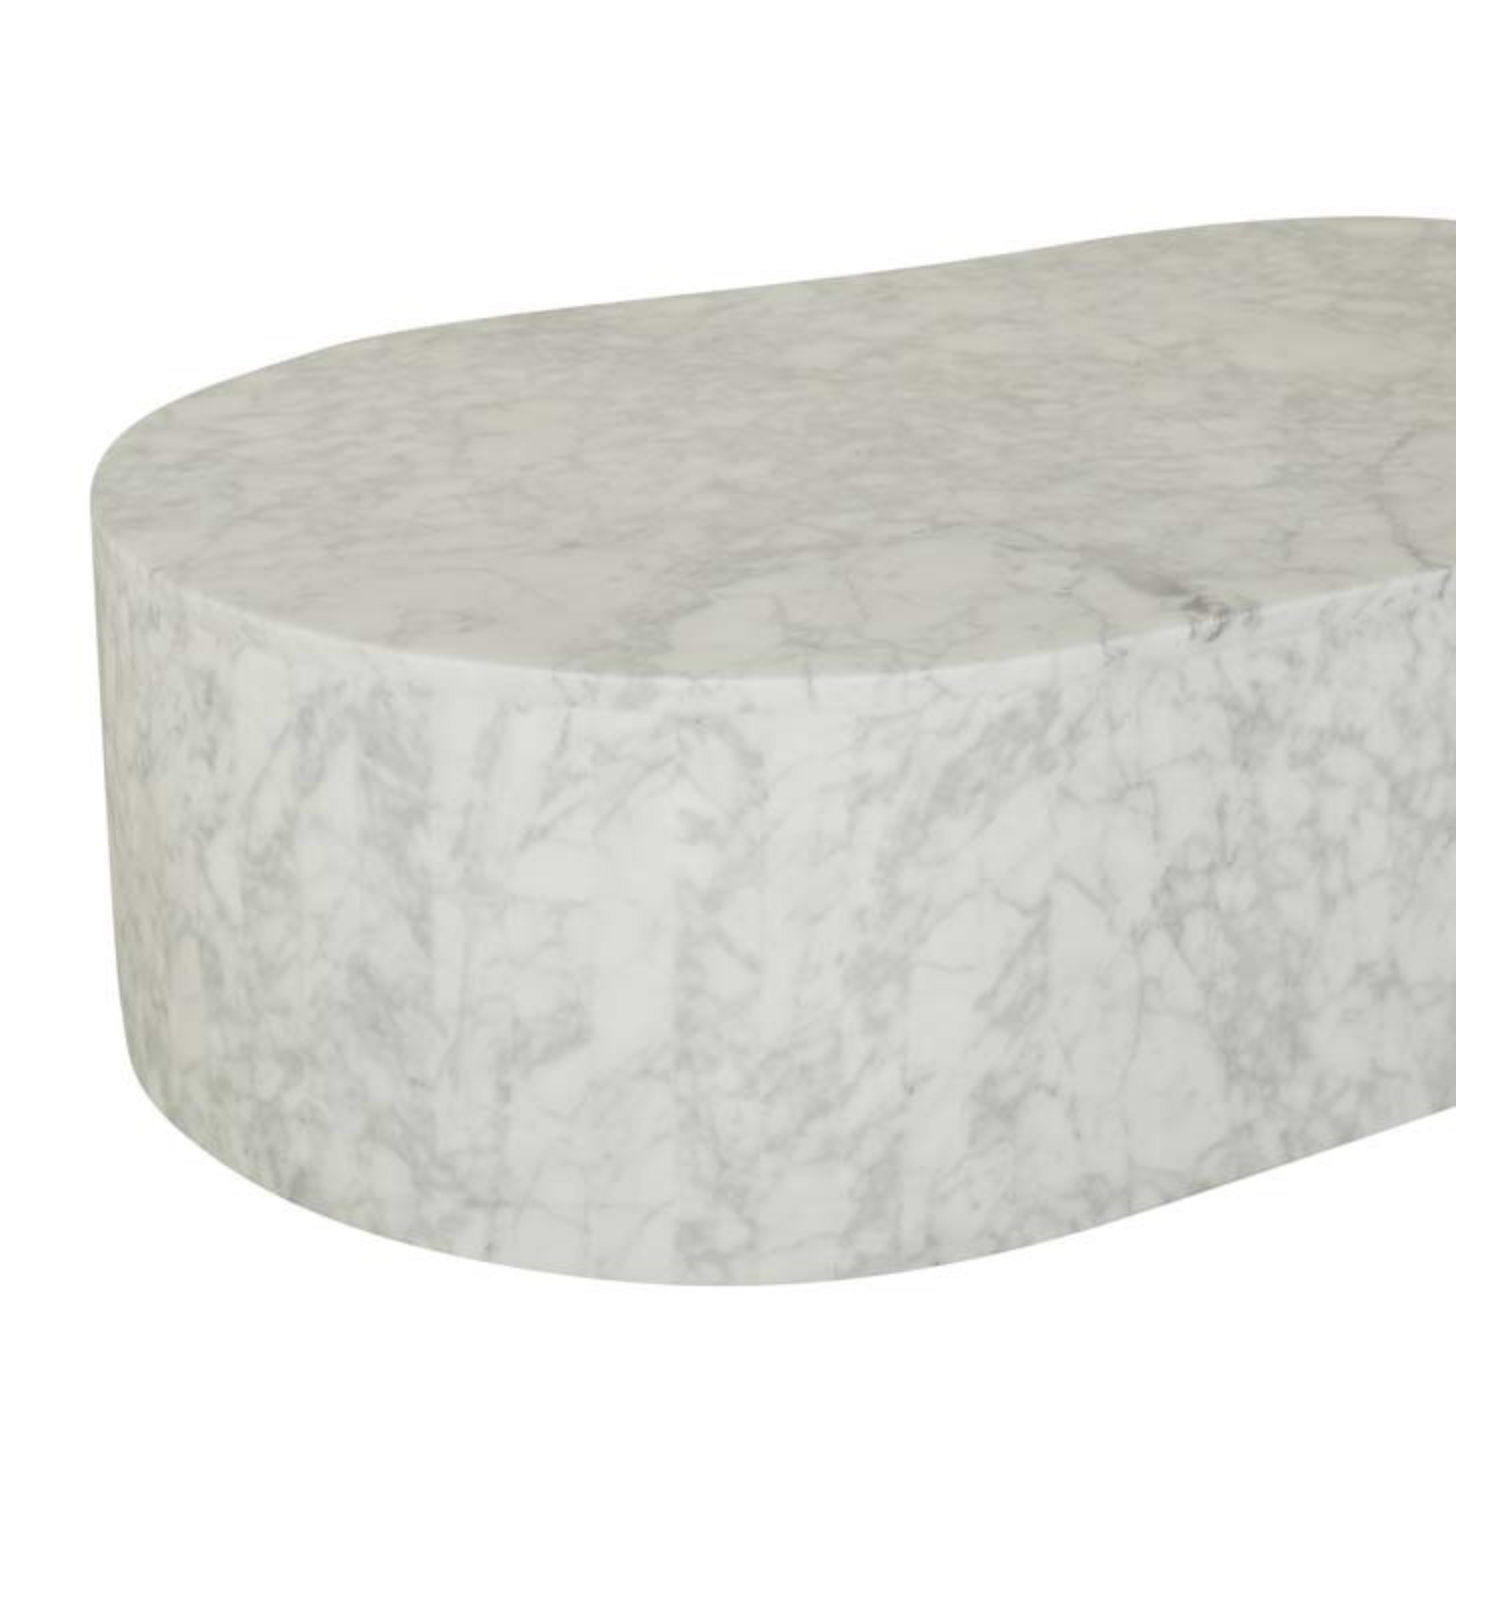 Picture of: Elle Block Oval Coffee Table Carrara Marble Zephyr Stone